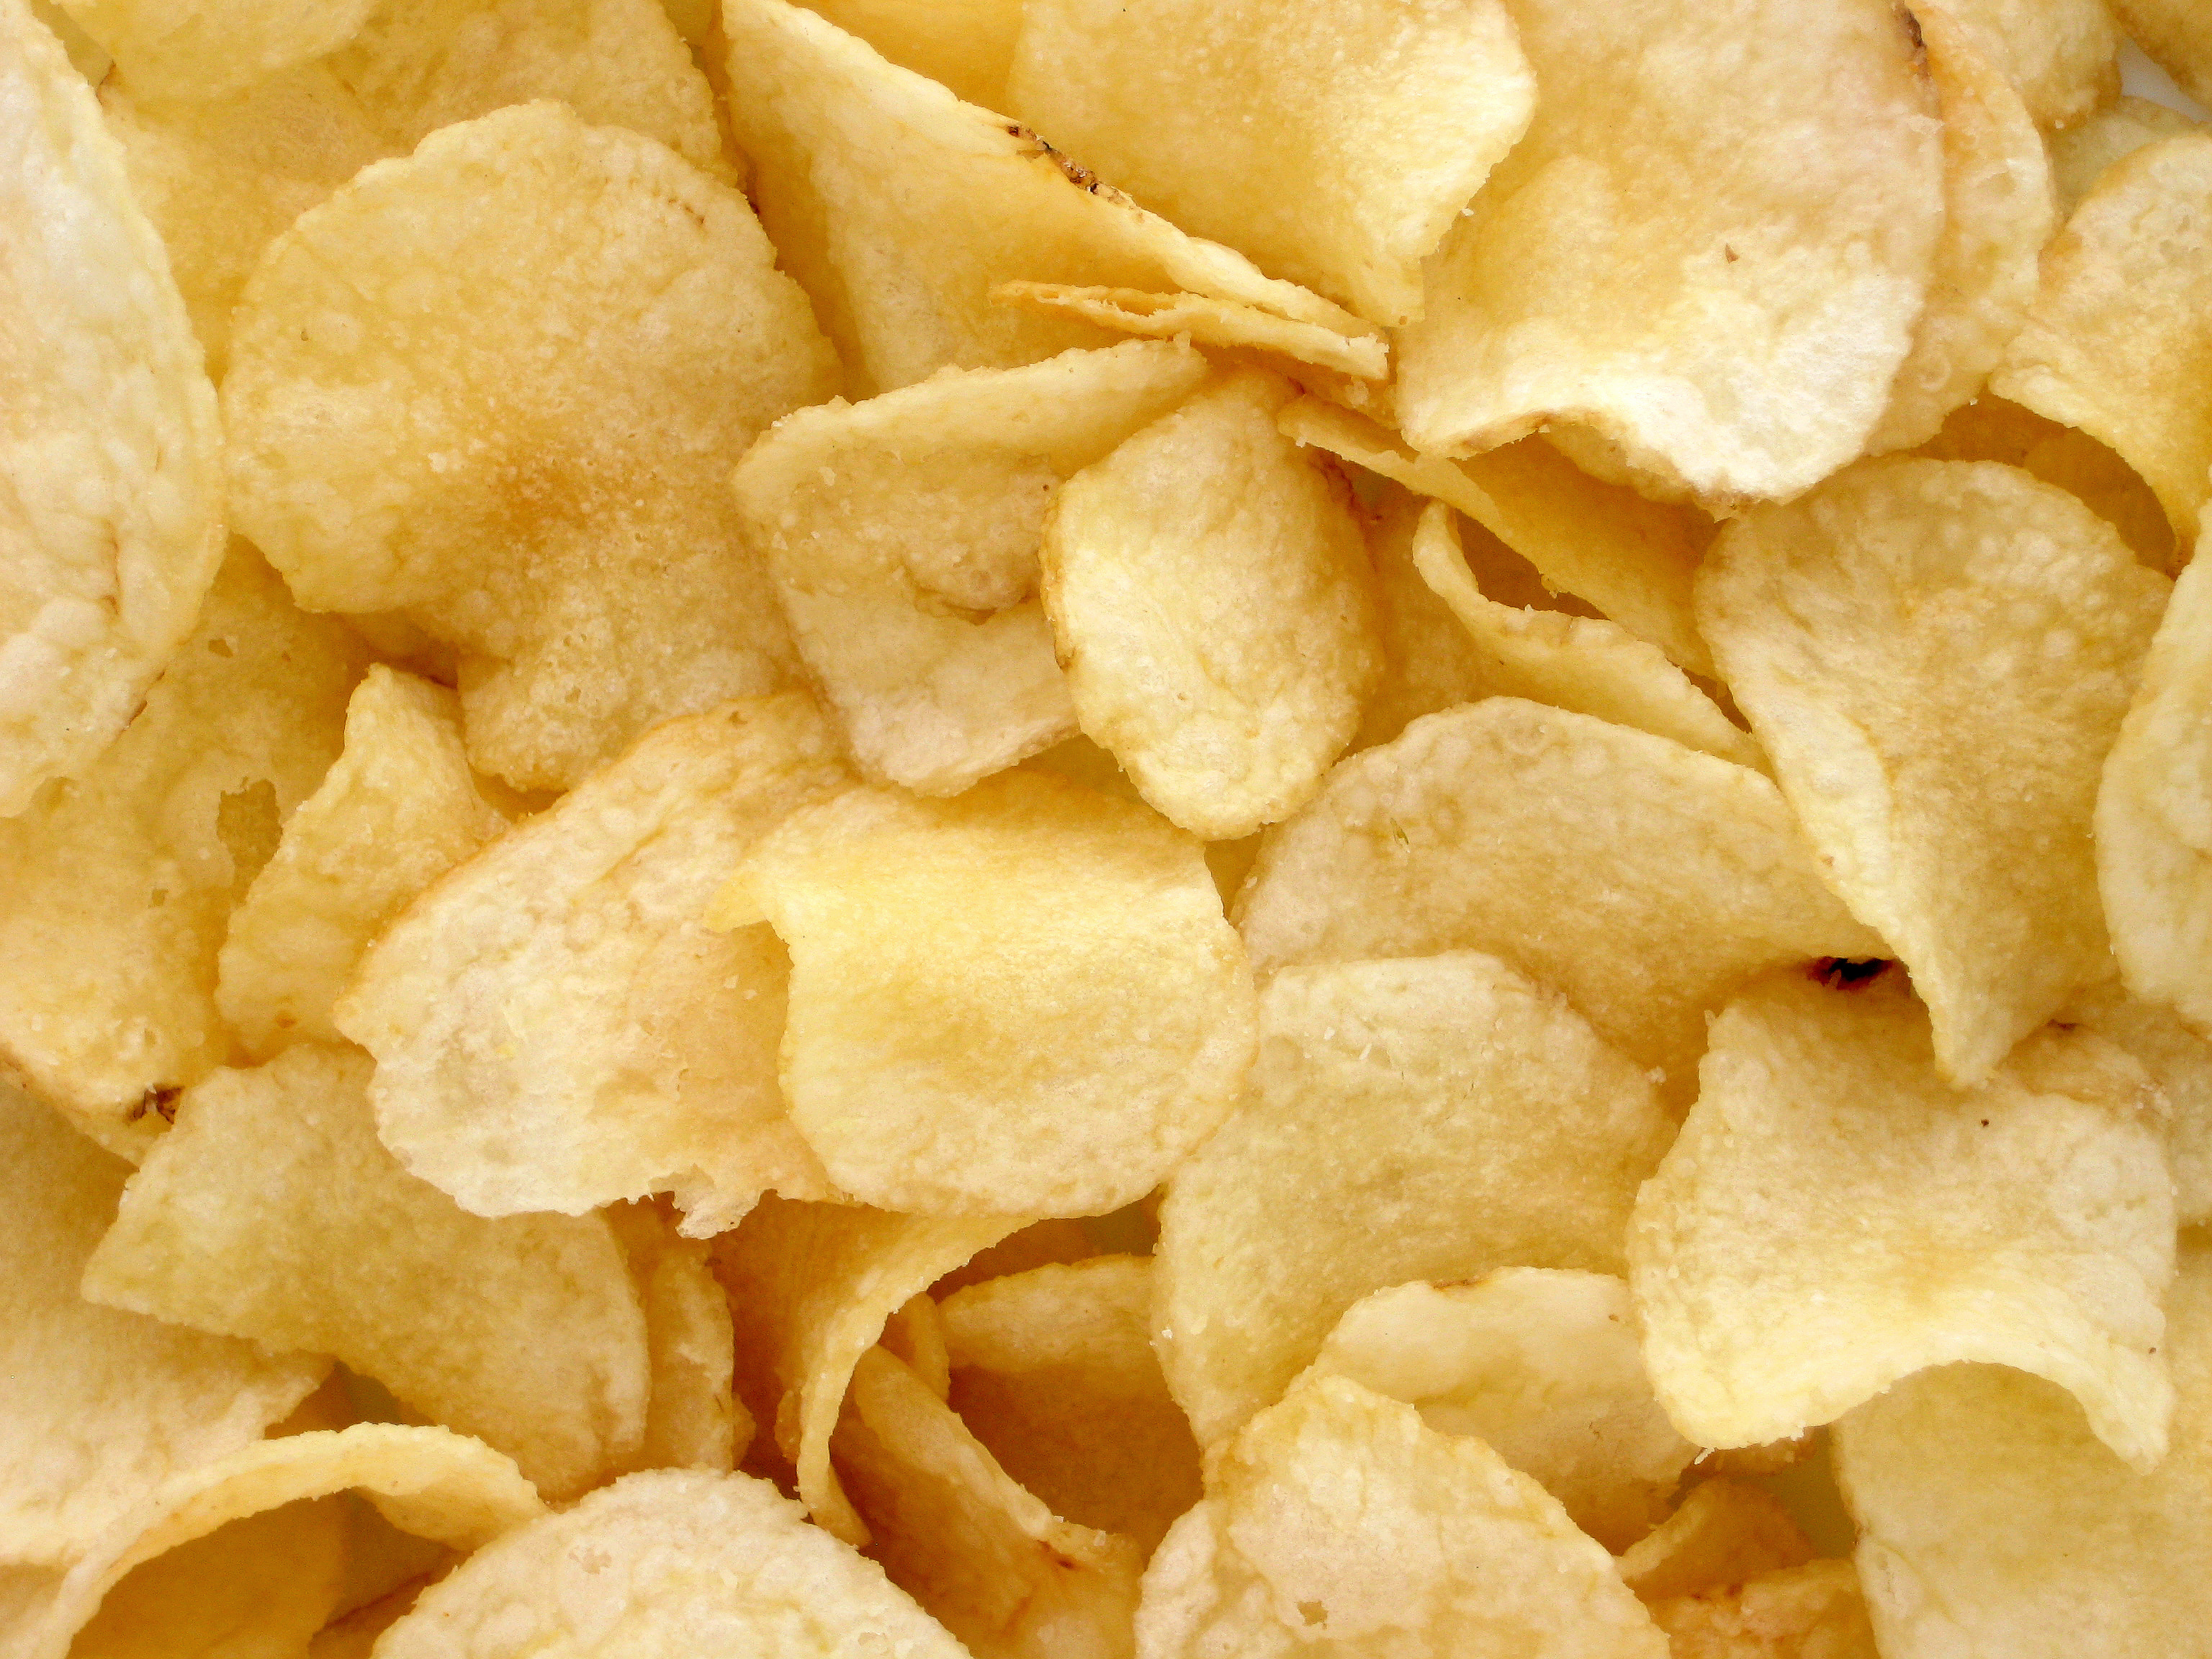 discussion on osmosis on a potato chip Ib biology ia: osmosis - free download as pdf file (pdf), text file (txt) or read  online  the effect of increasing sucrose concentration on the mass of potato  chips  total percentage uncertainties calculated in table 5 and these are  discussed.